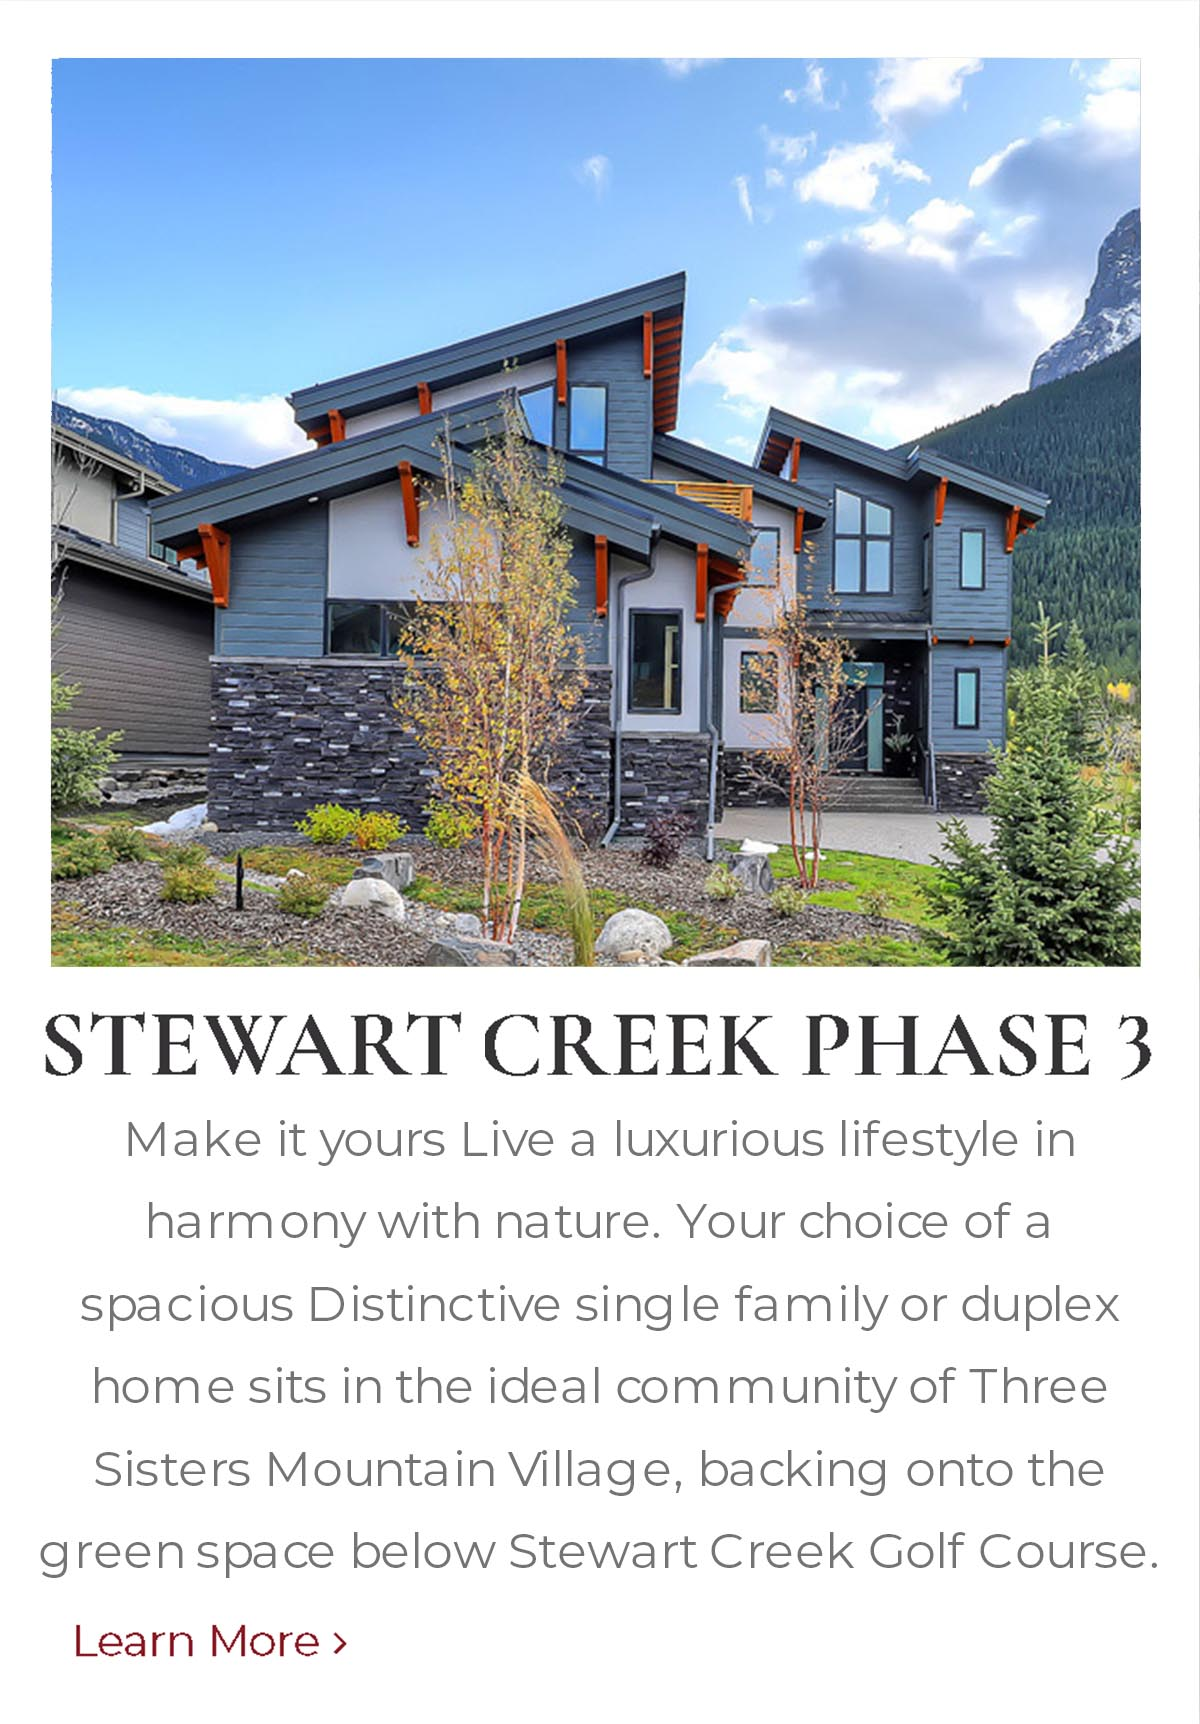 Stewart Creek Phase 3, mountain homes built by Distinctive Homes